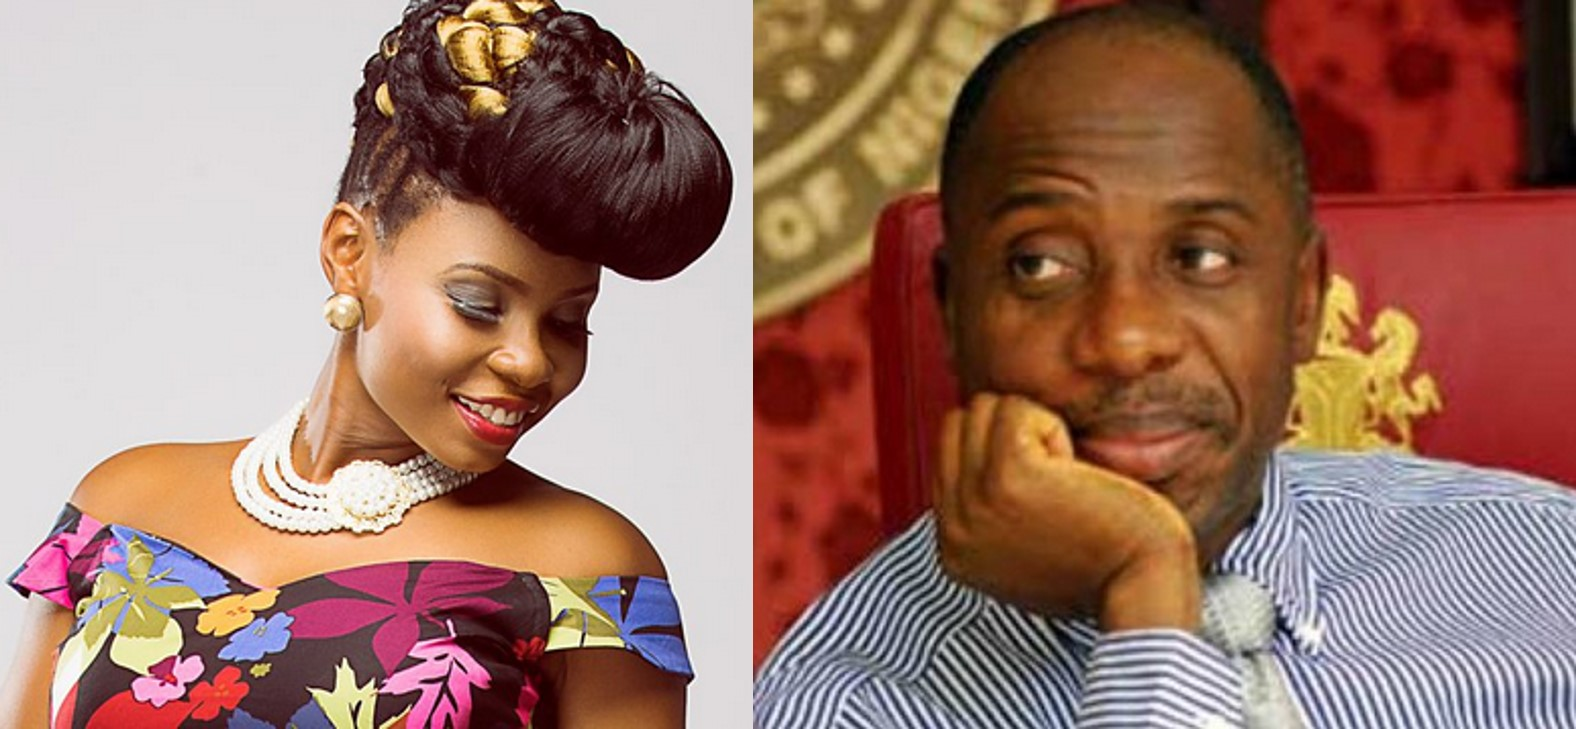 'Give way to those who still have hope in a better Nigeria' – Yemi Alade tells Amaechi